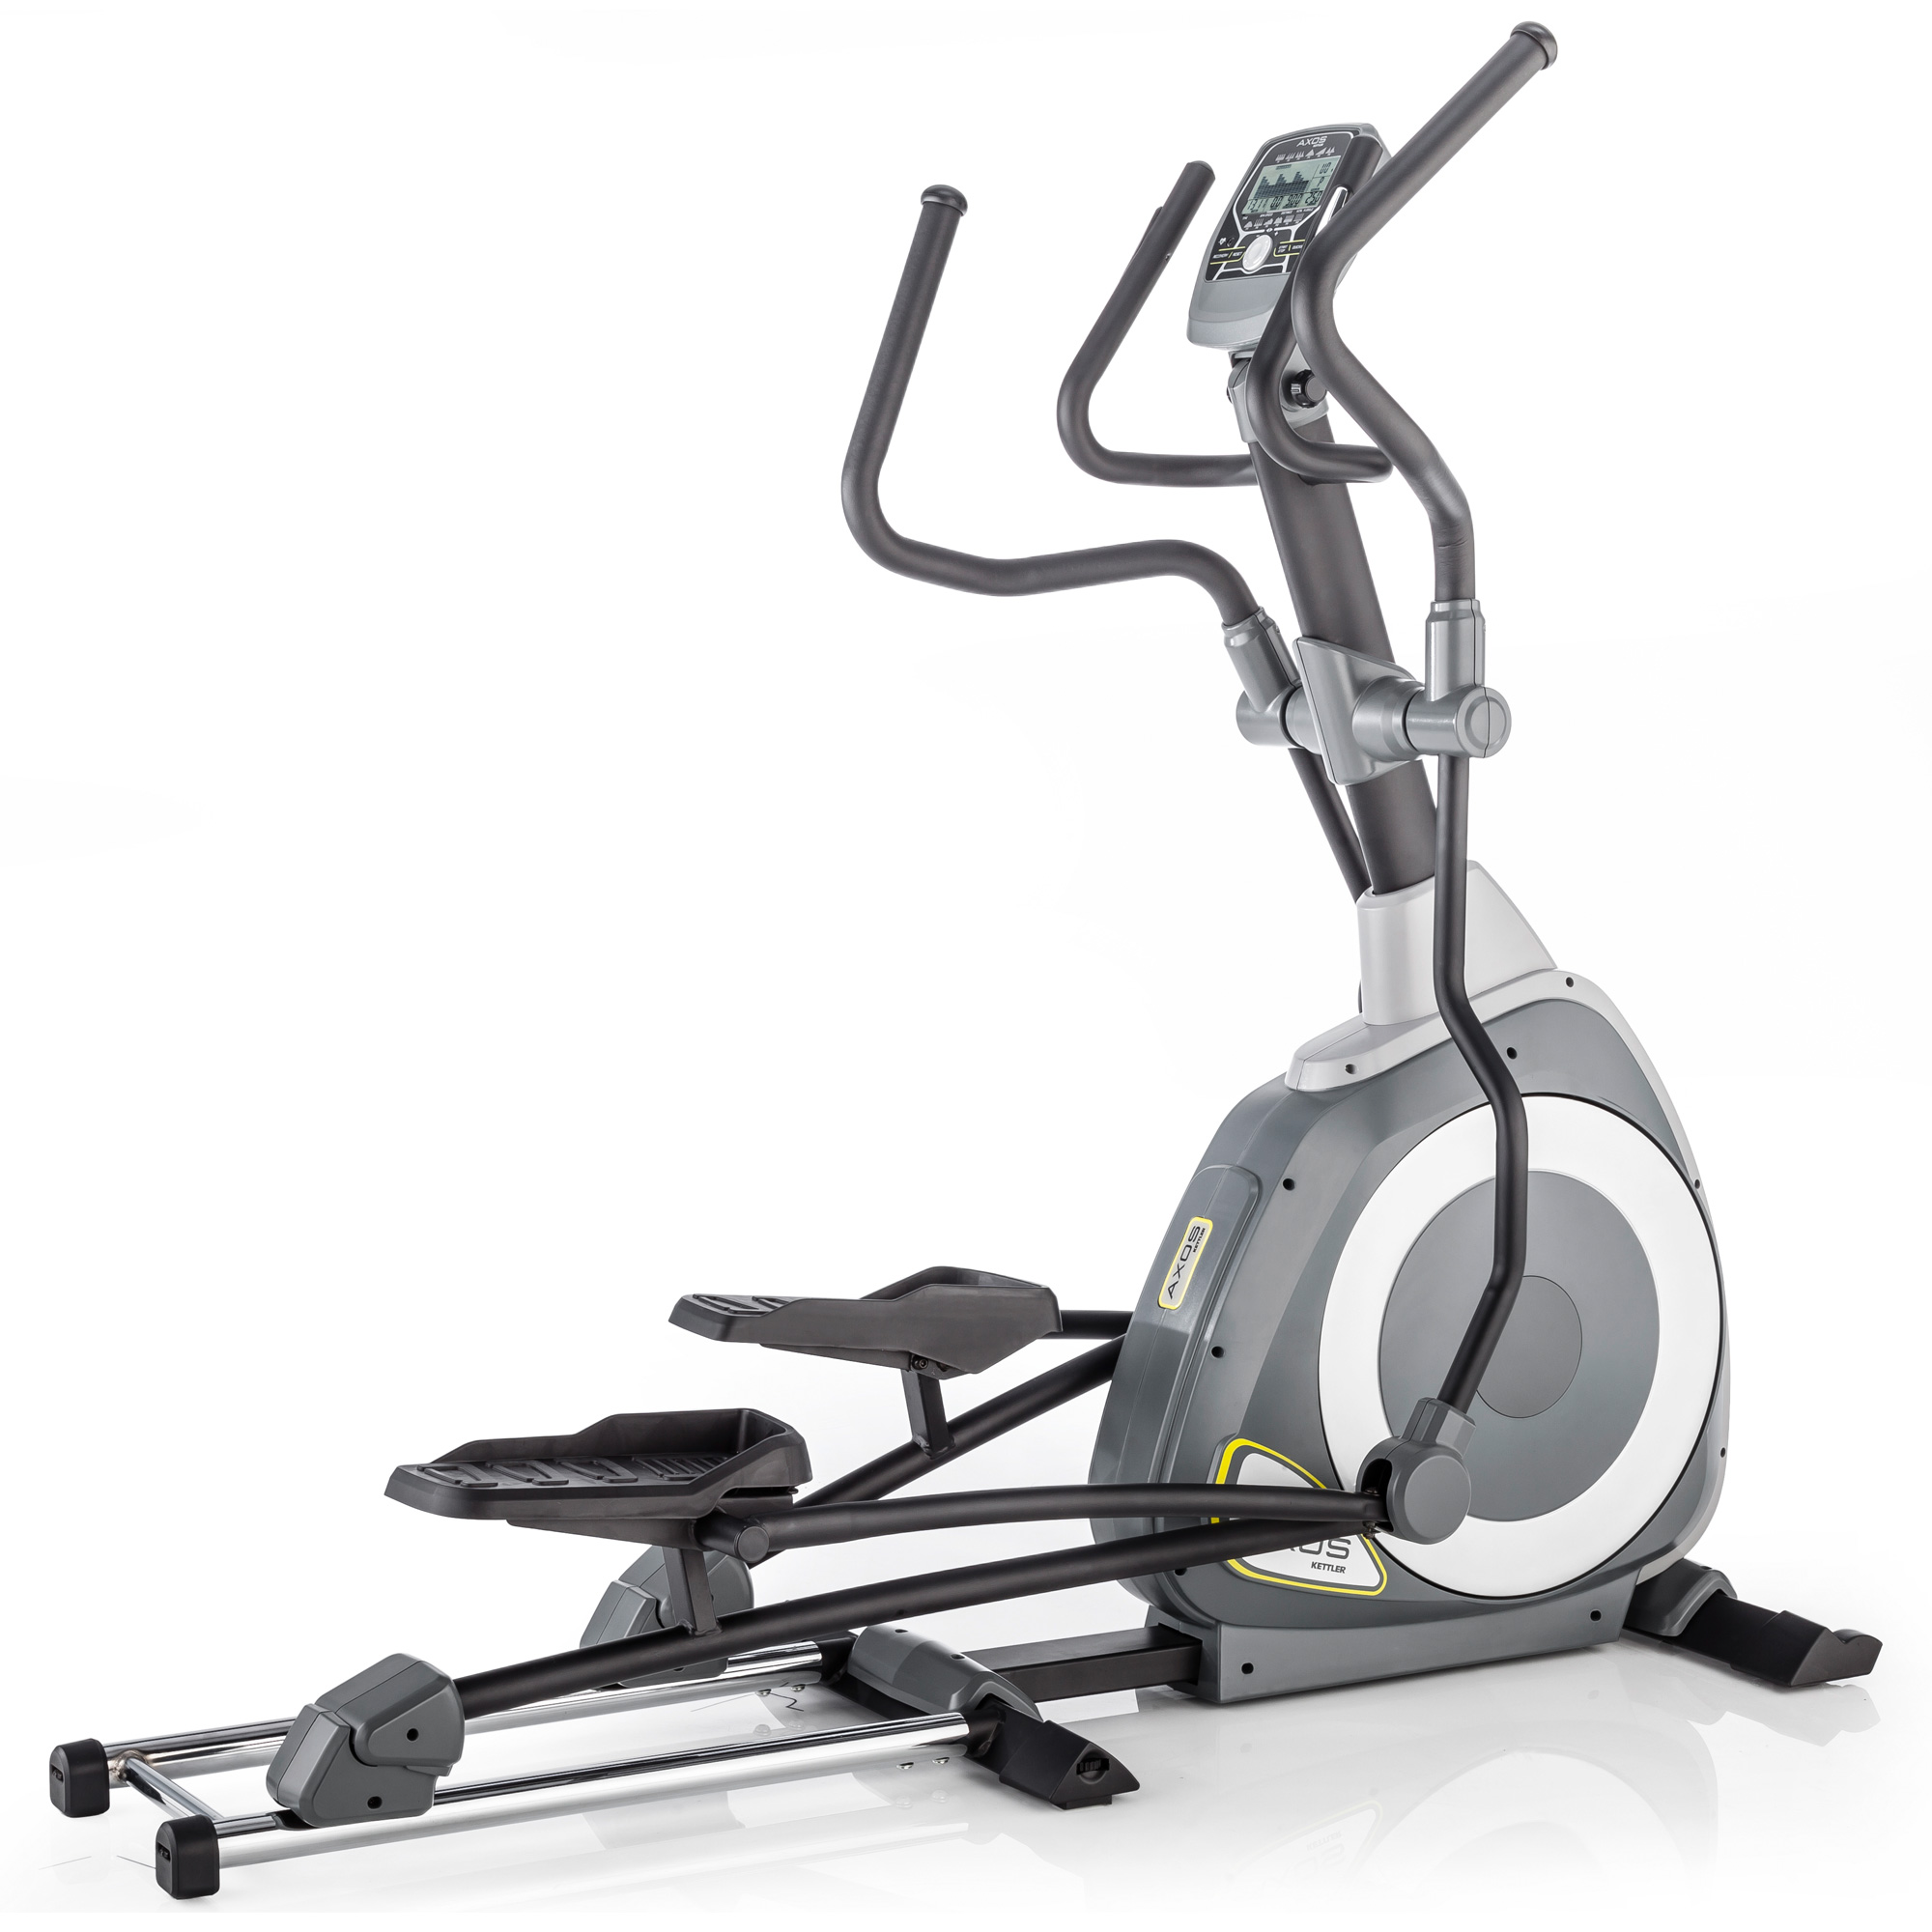 Kettler Fitness Kettler Cross P Elliptical Cross Trainer